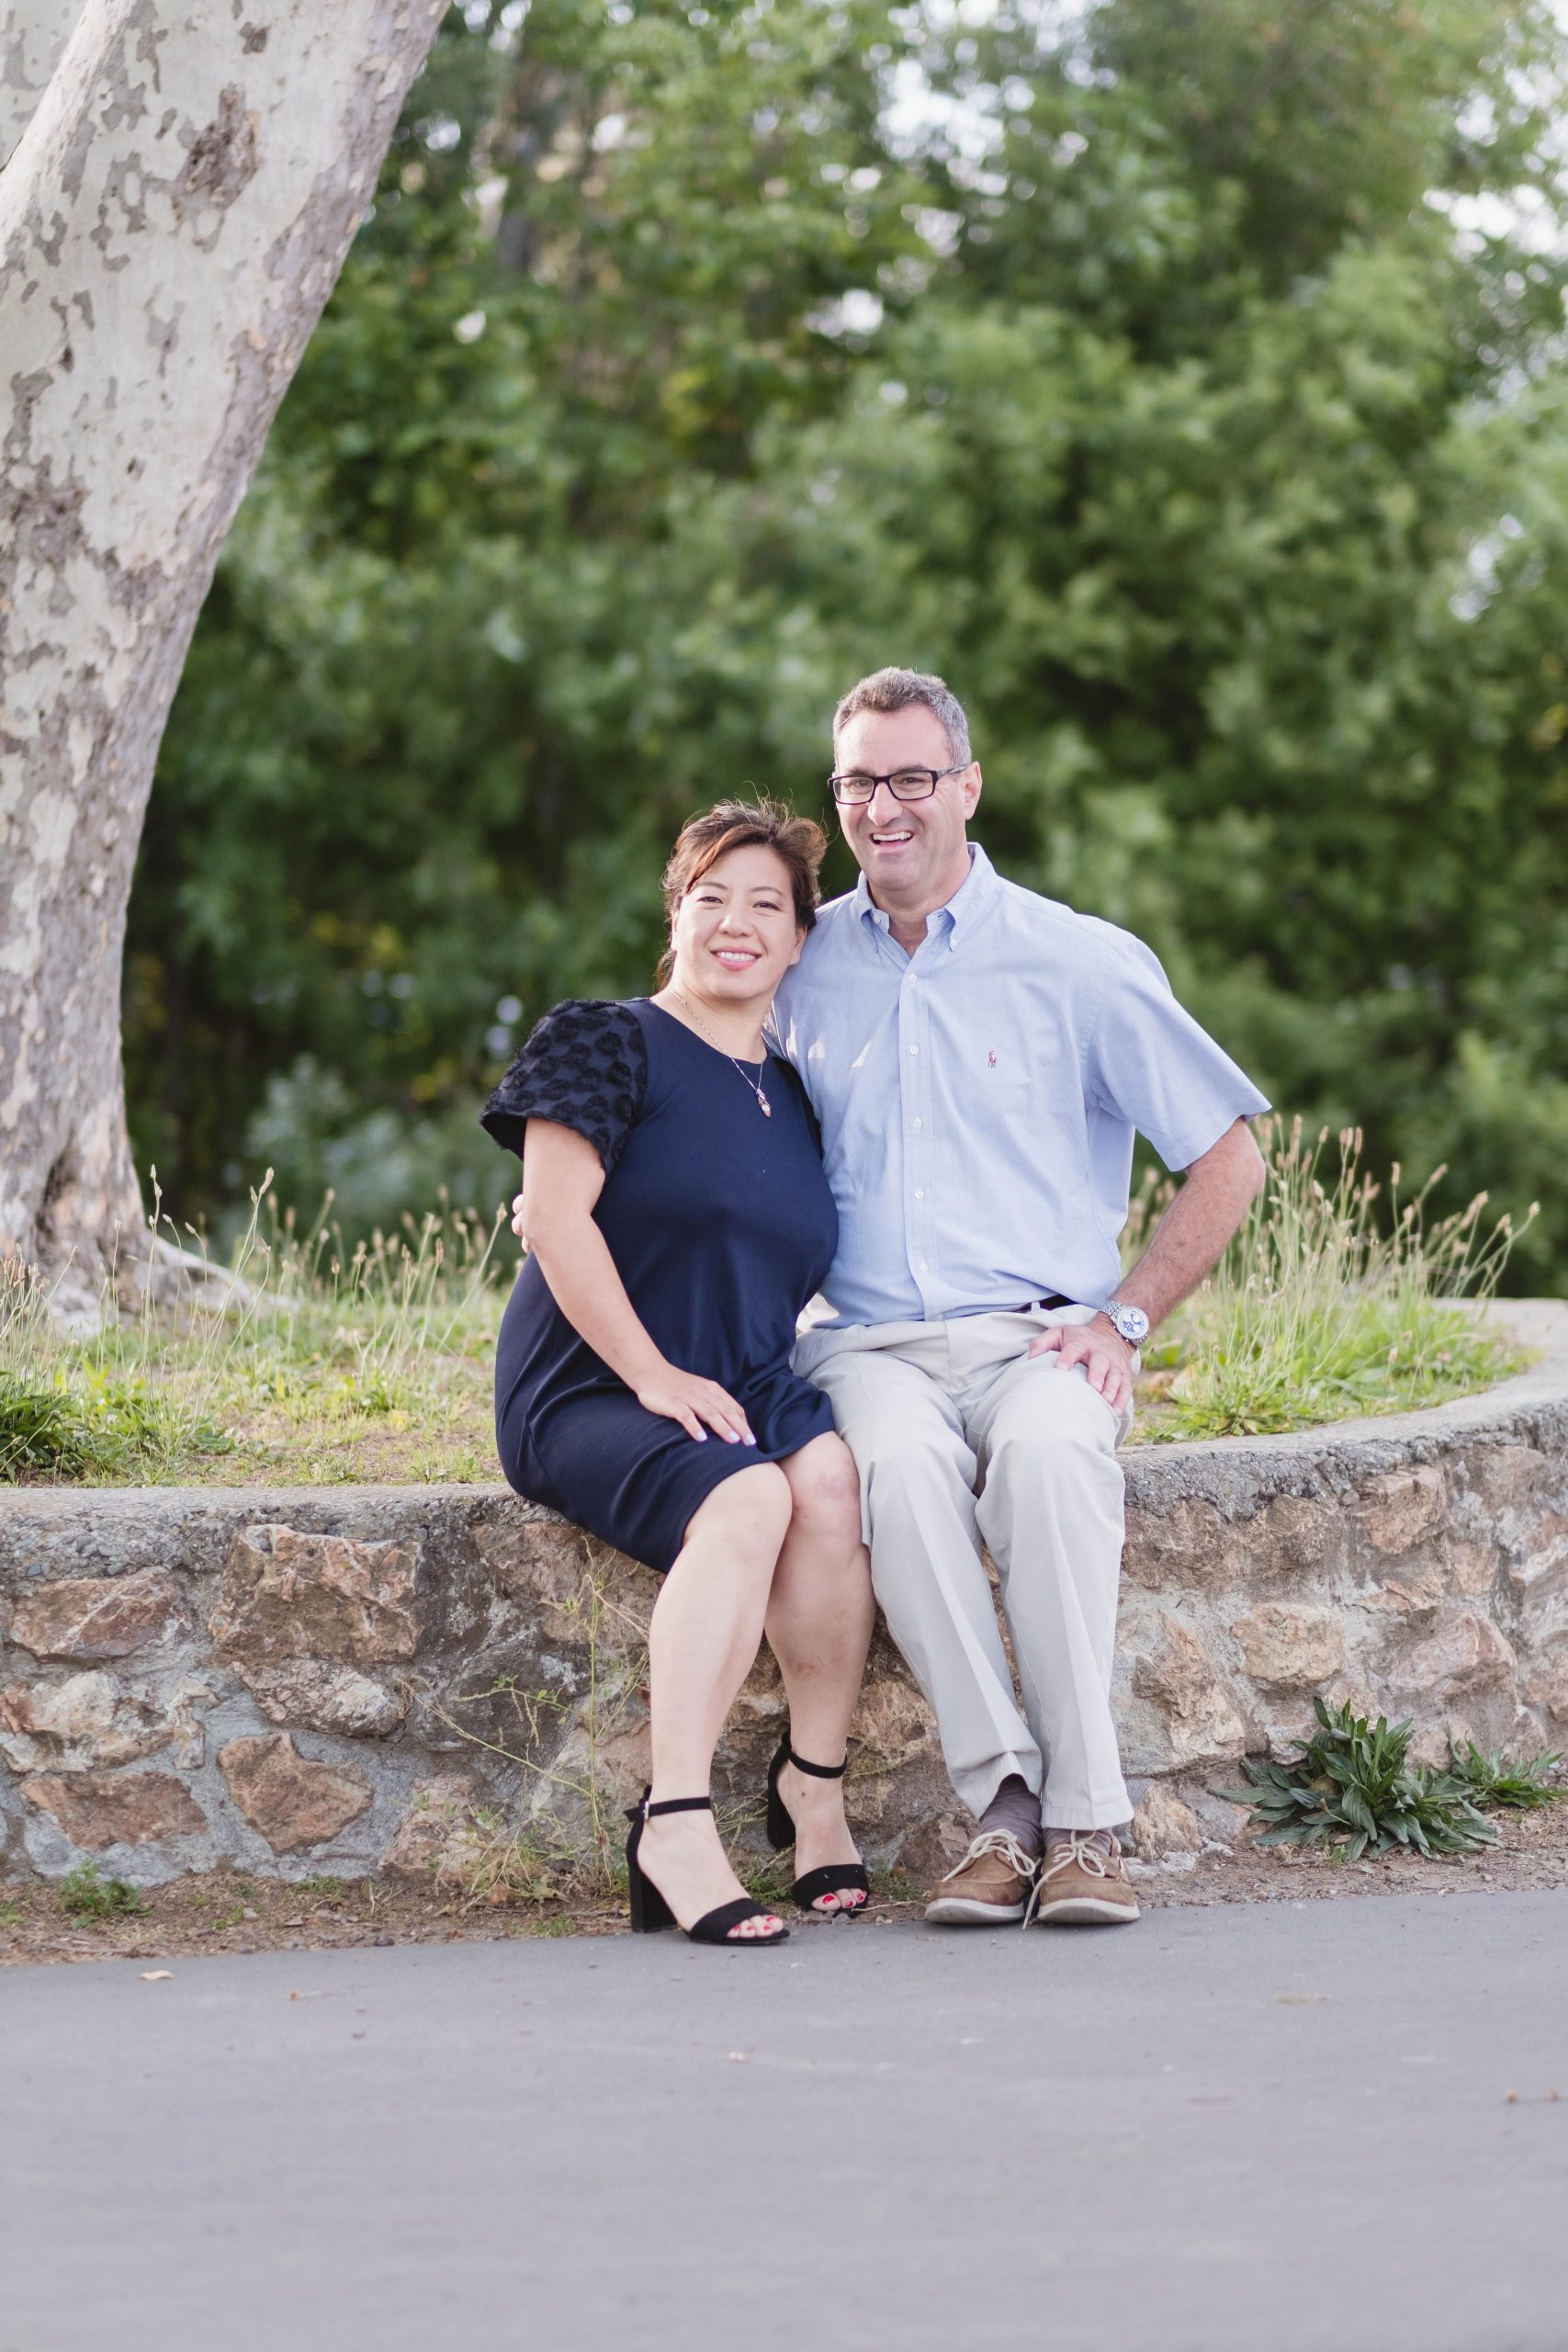 wife and husband sitting on a stone path